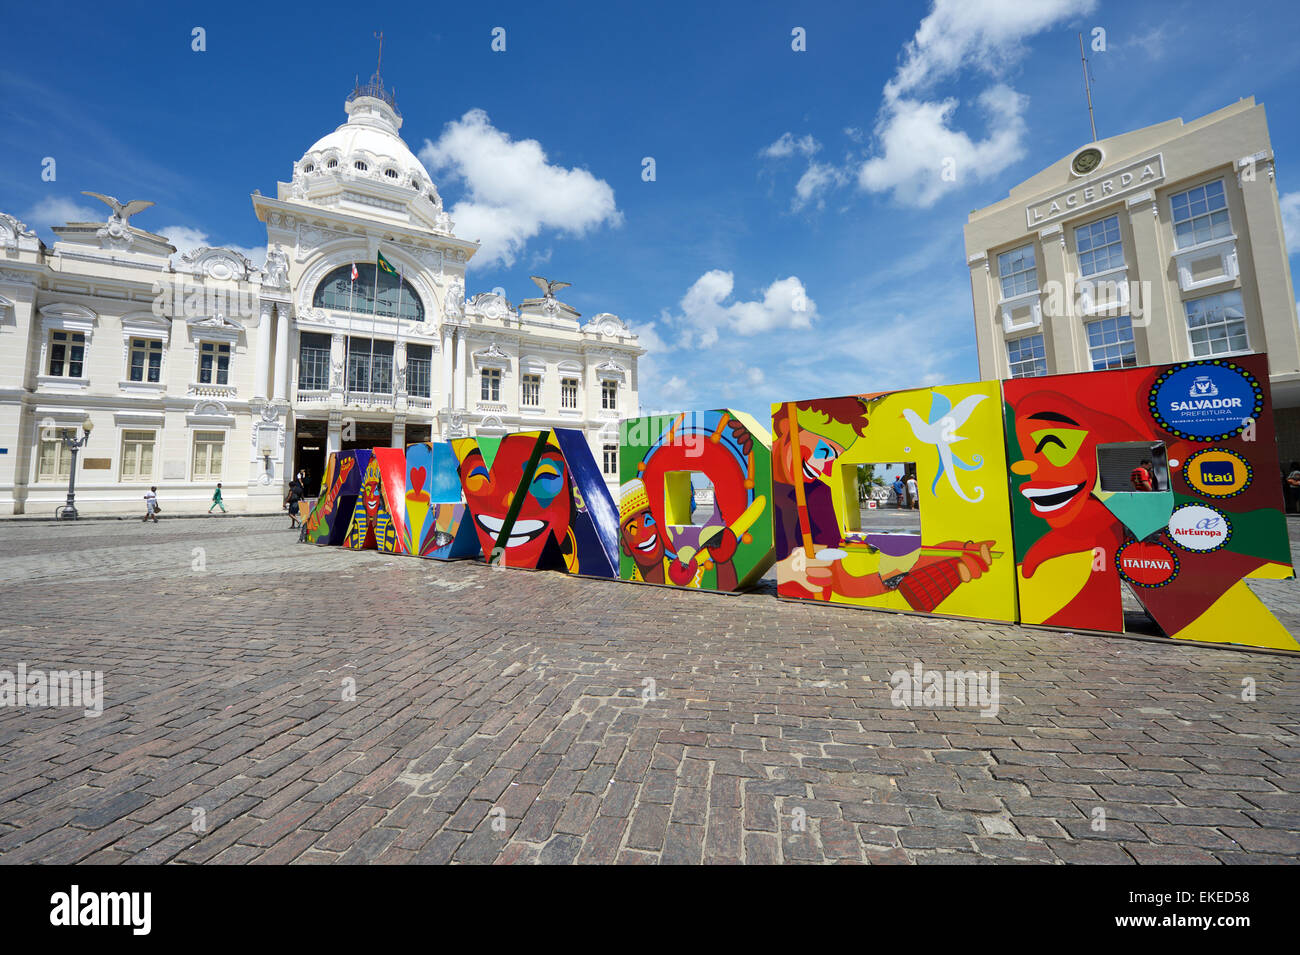 SALVADOR, BRAZIL - MARCH 11, 2015: Colorful signage spelling out Salvador in block letters decorates the Tome de - Stock Image